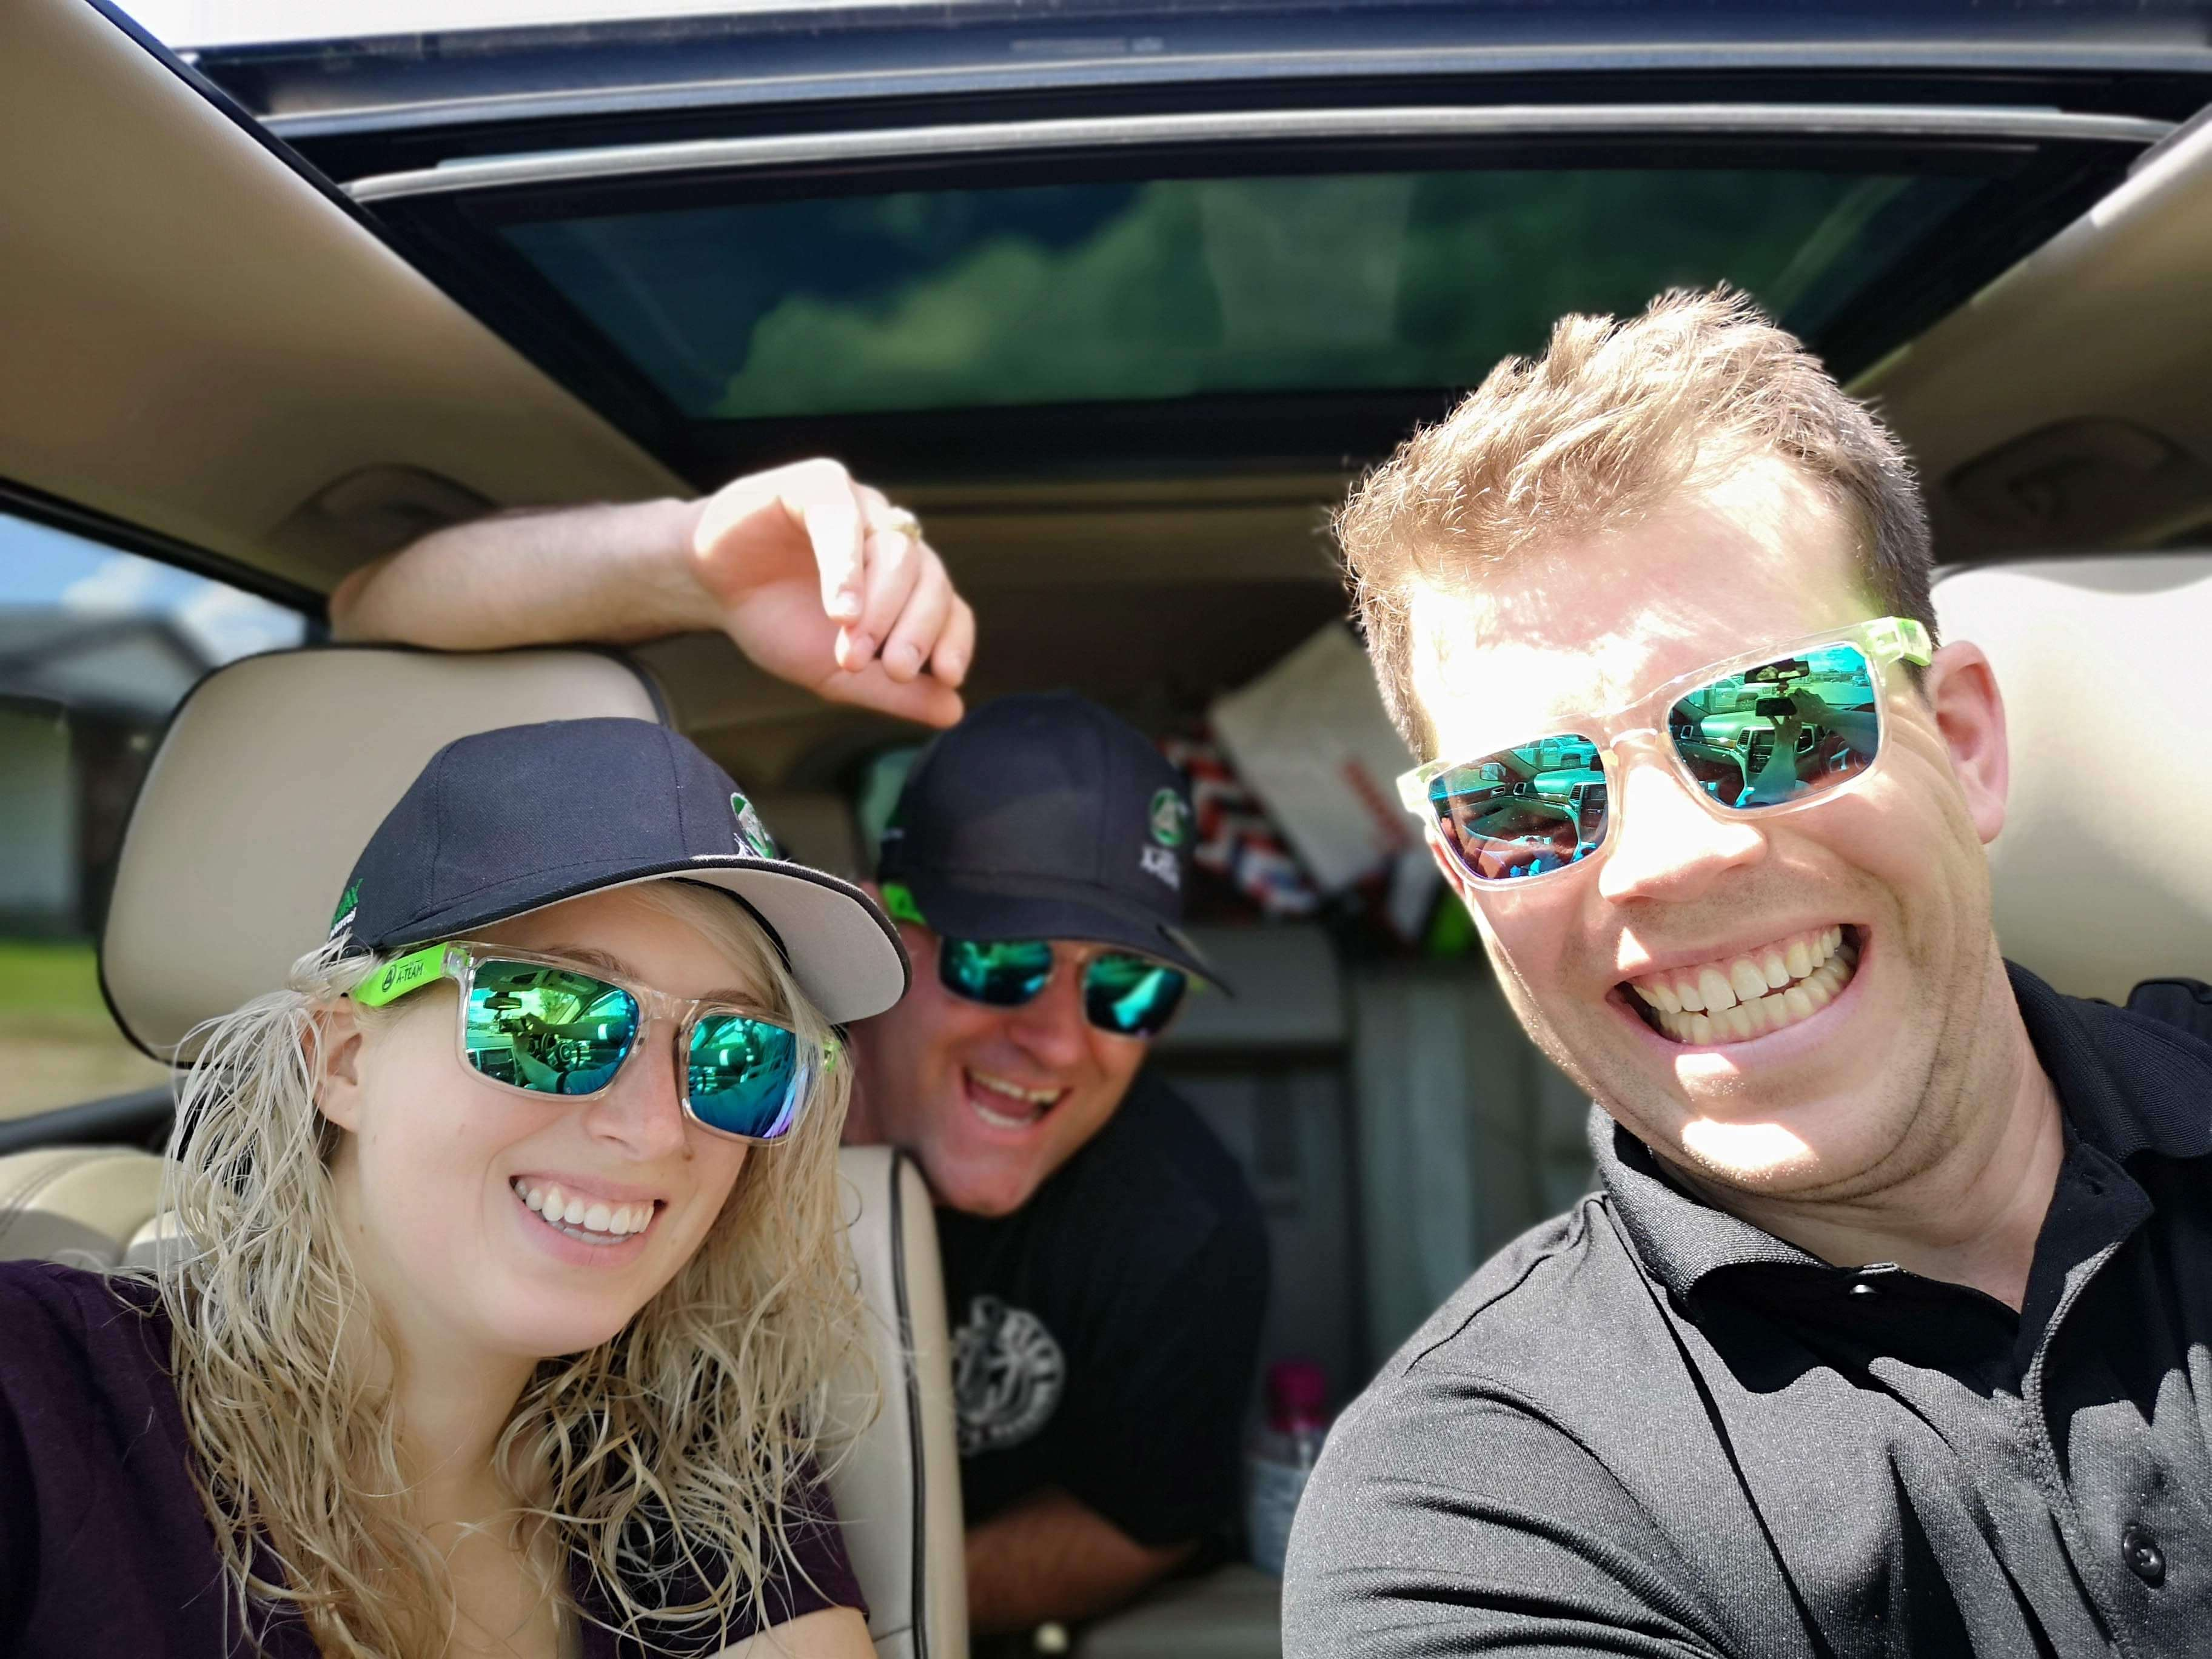 Tom and a couple in a car smiling